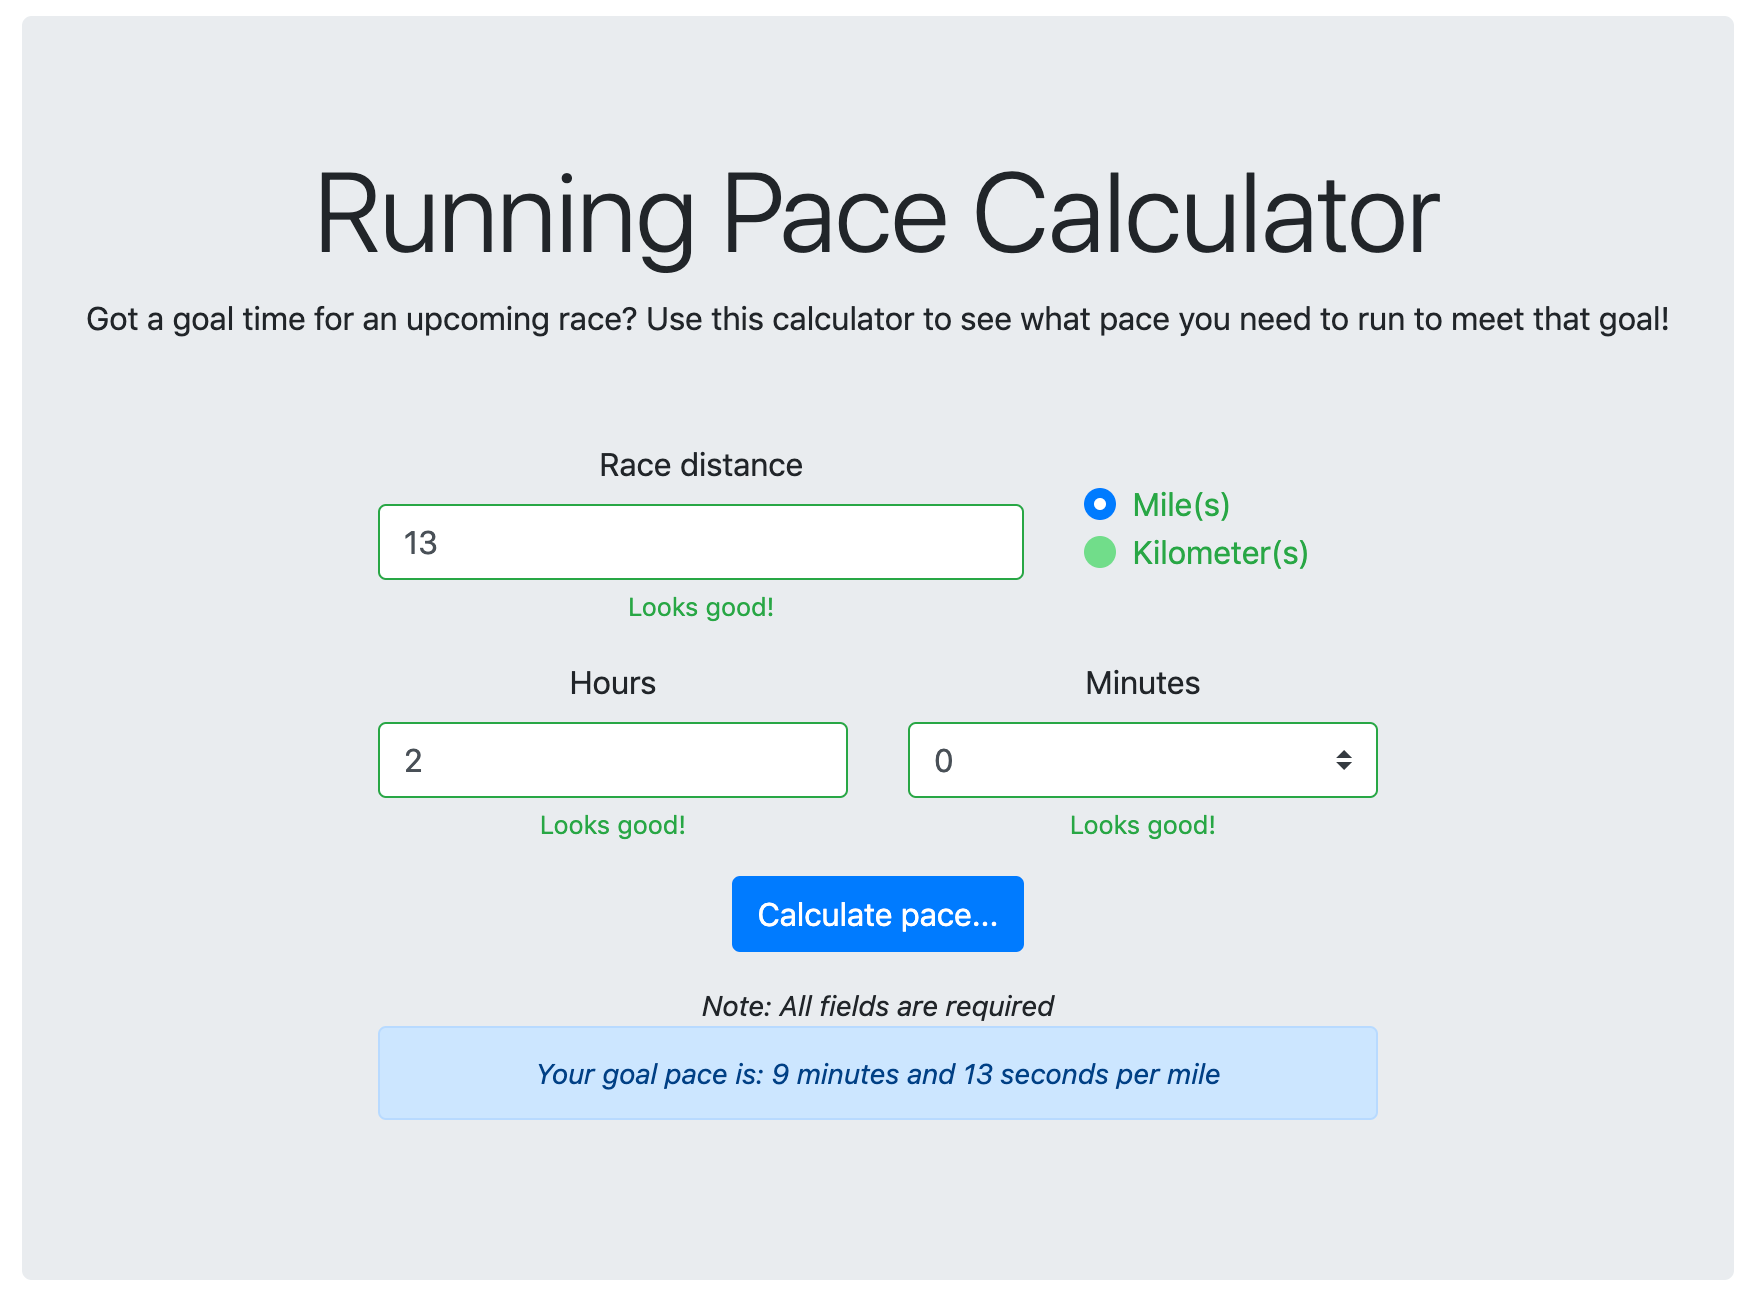 Running pace calculator example